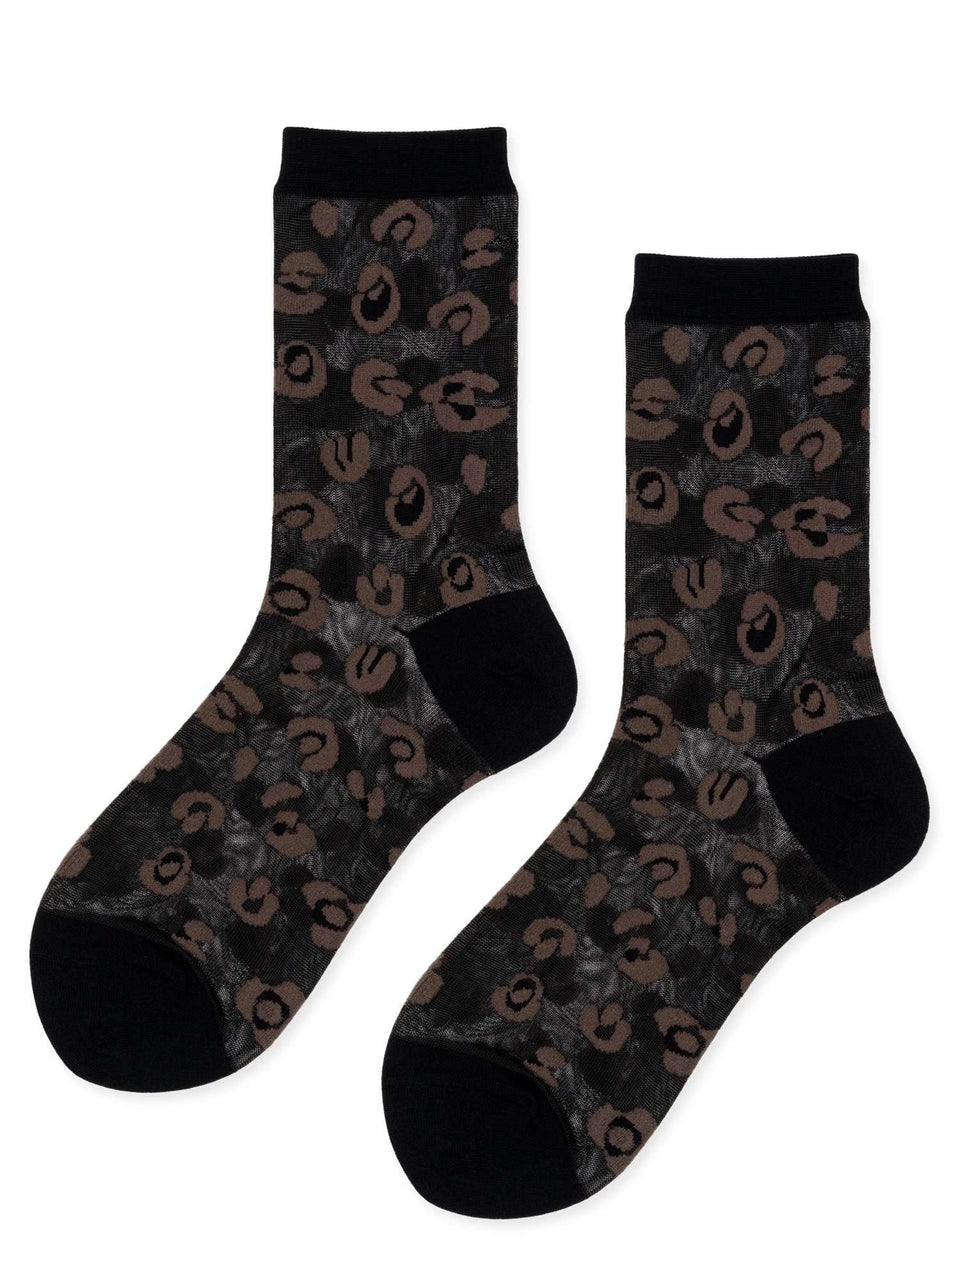 The Cheetah Sheer Crew Sock